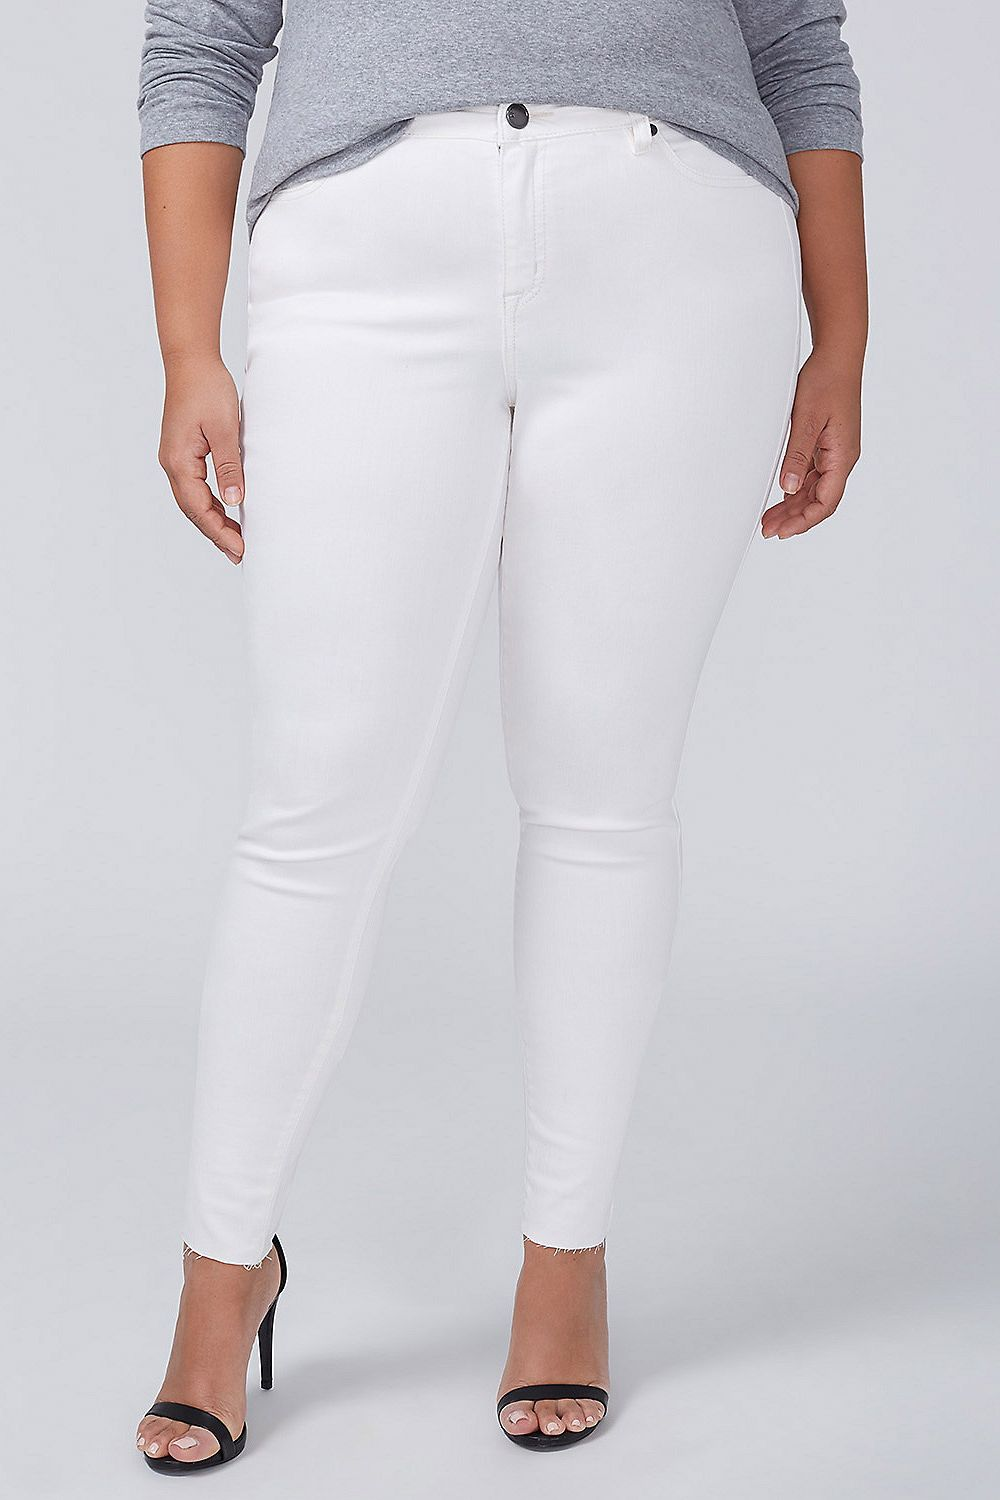 43202ff937798 Best plus-size white jeans. Lane Bryant Power Pockets Super Stretch Skinny  White Ankle Jean